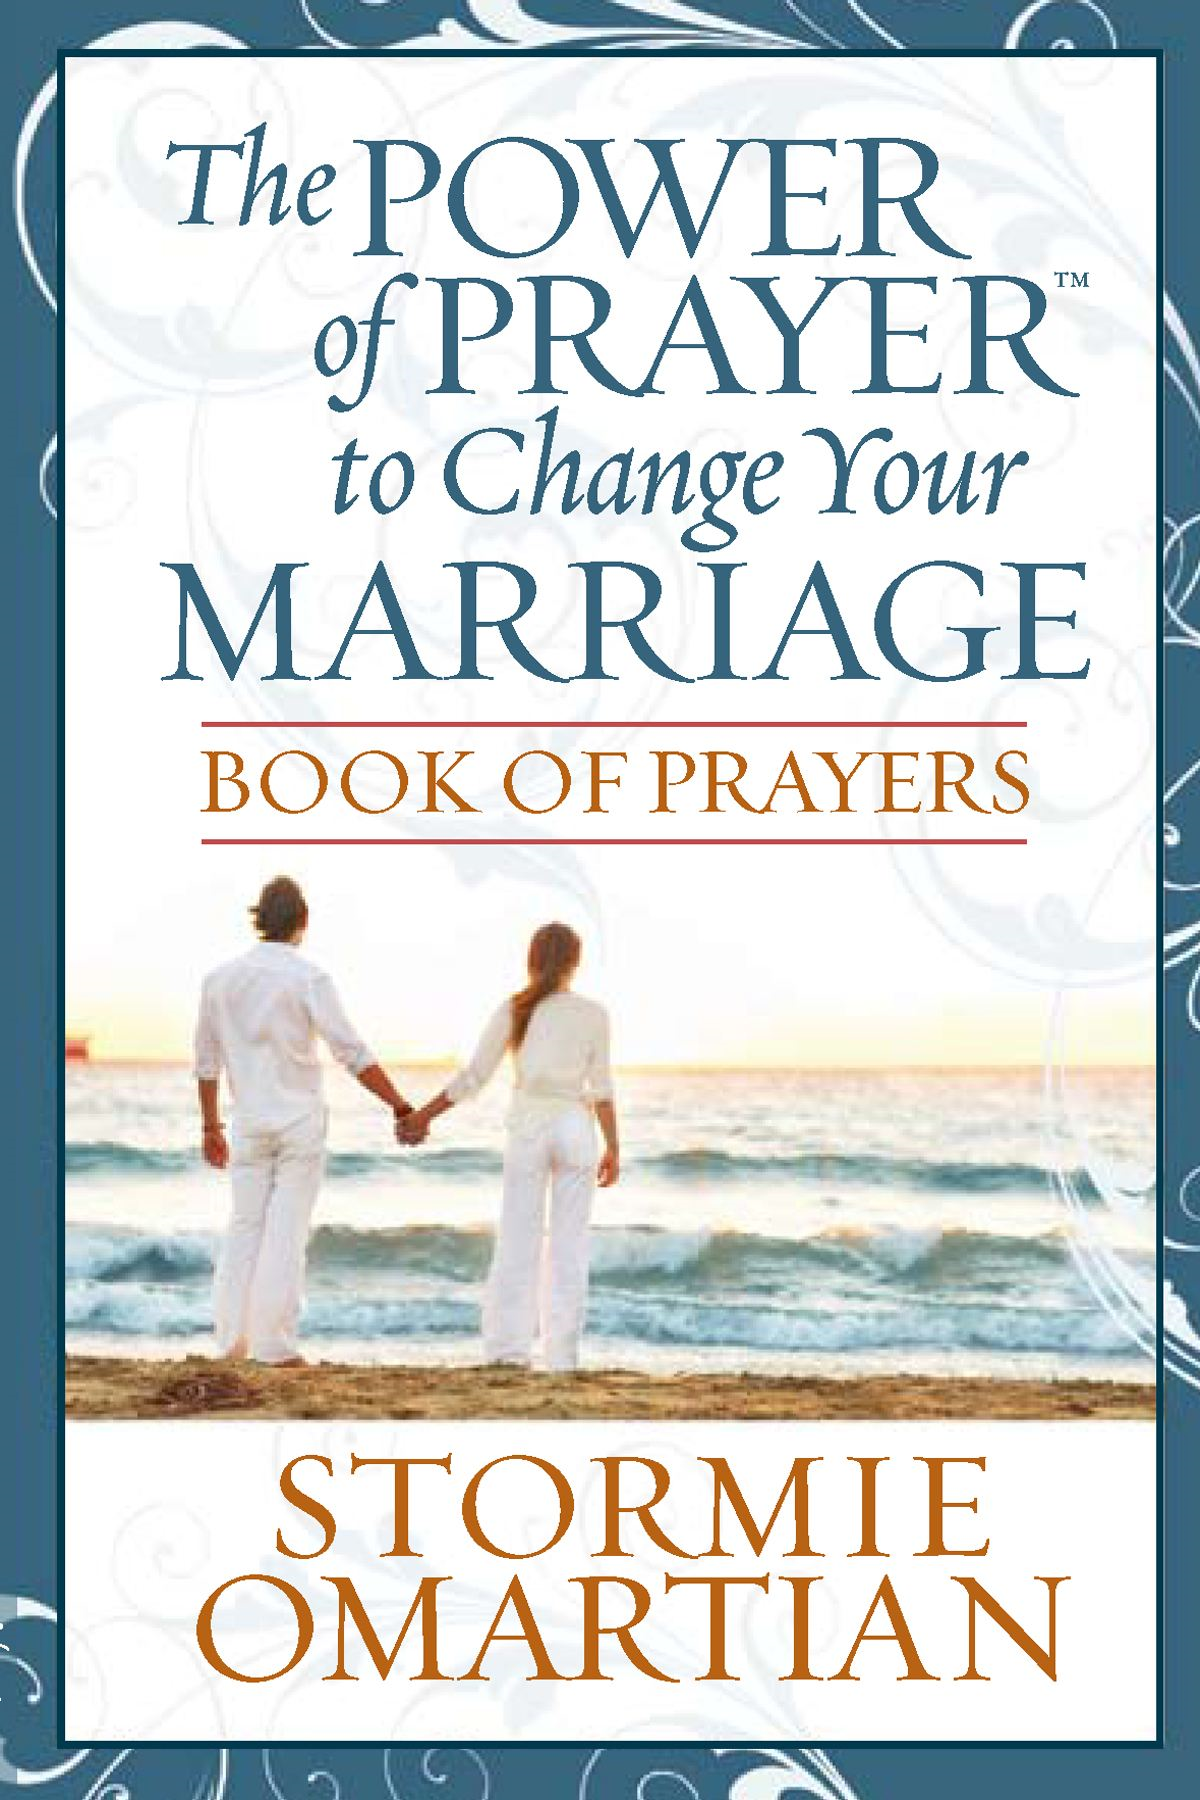 The Power of Prayer™ to Change Your Marriage Book of Prayers By: Stormie Omartian